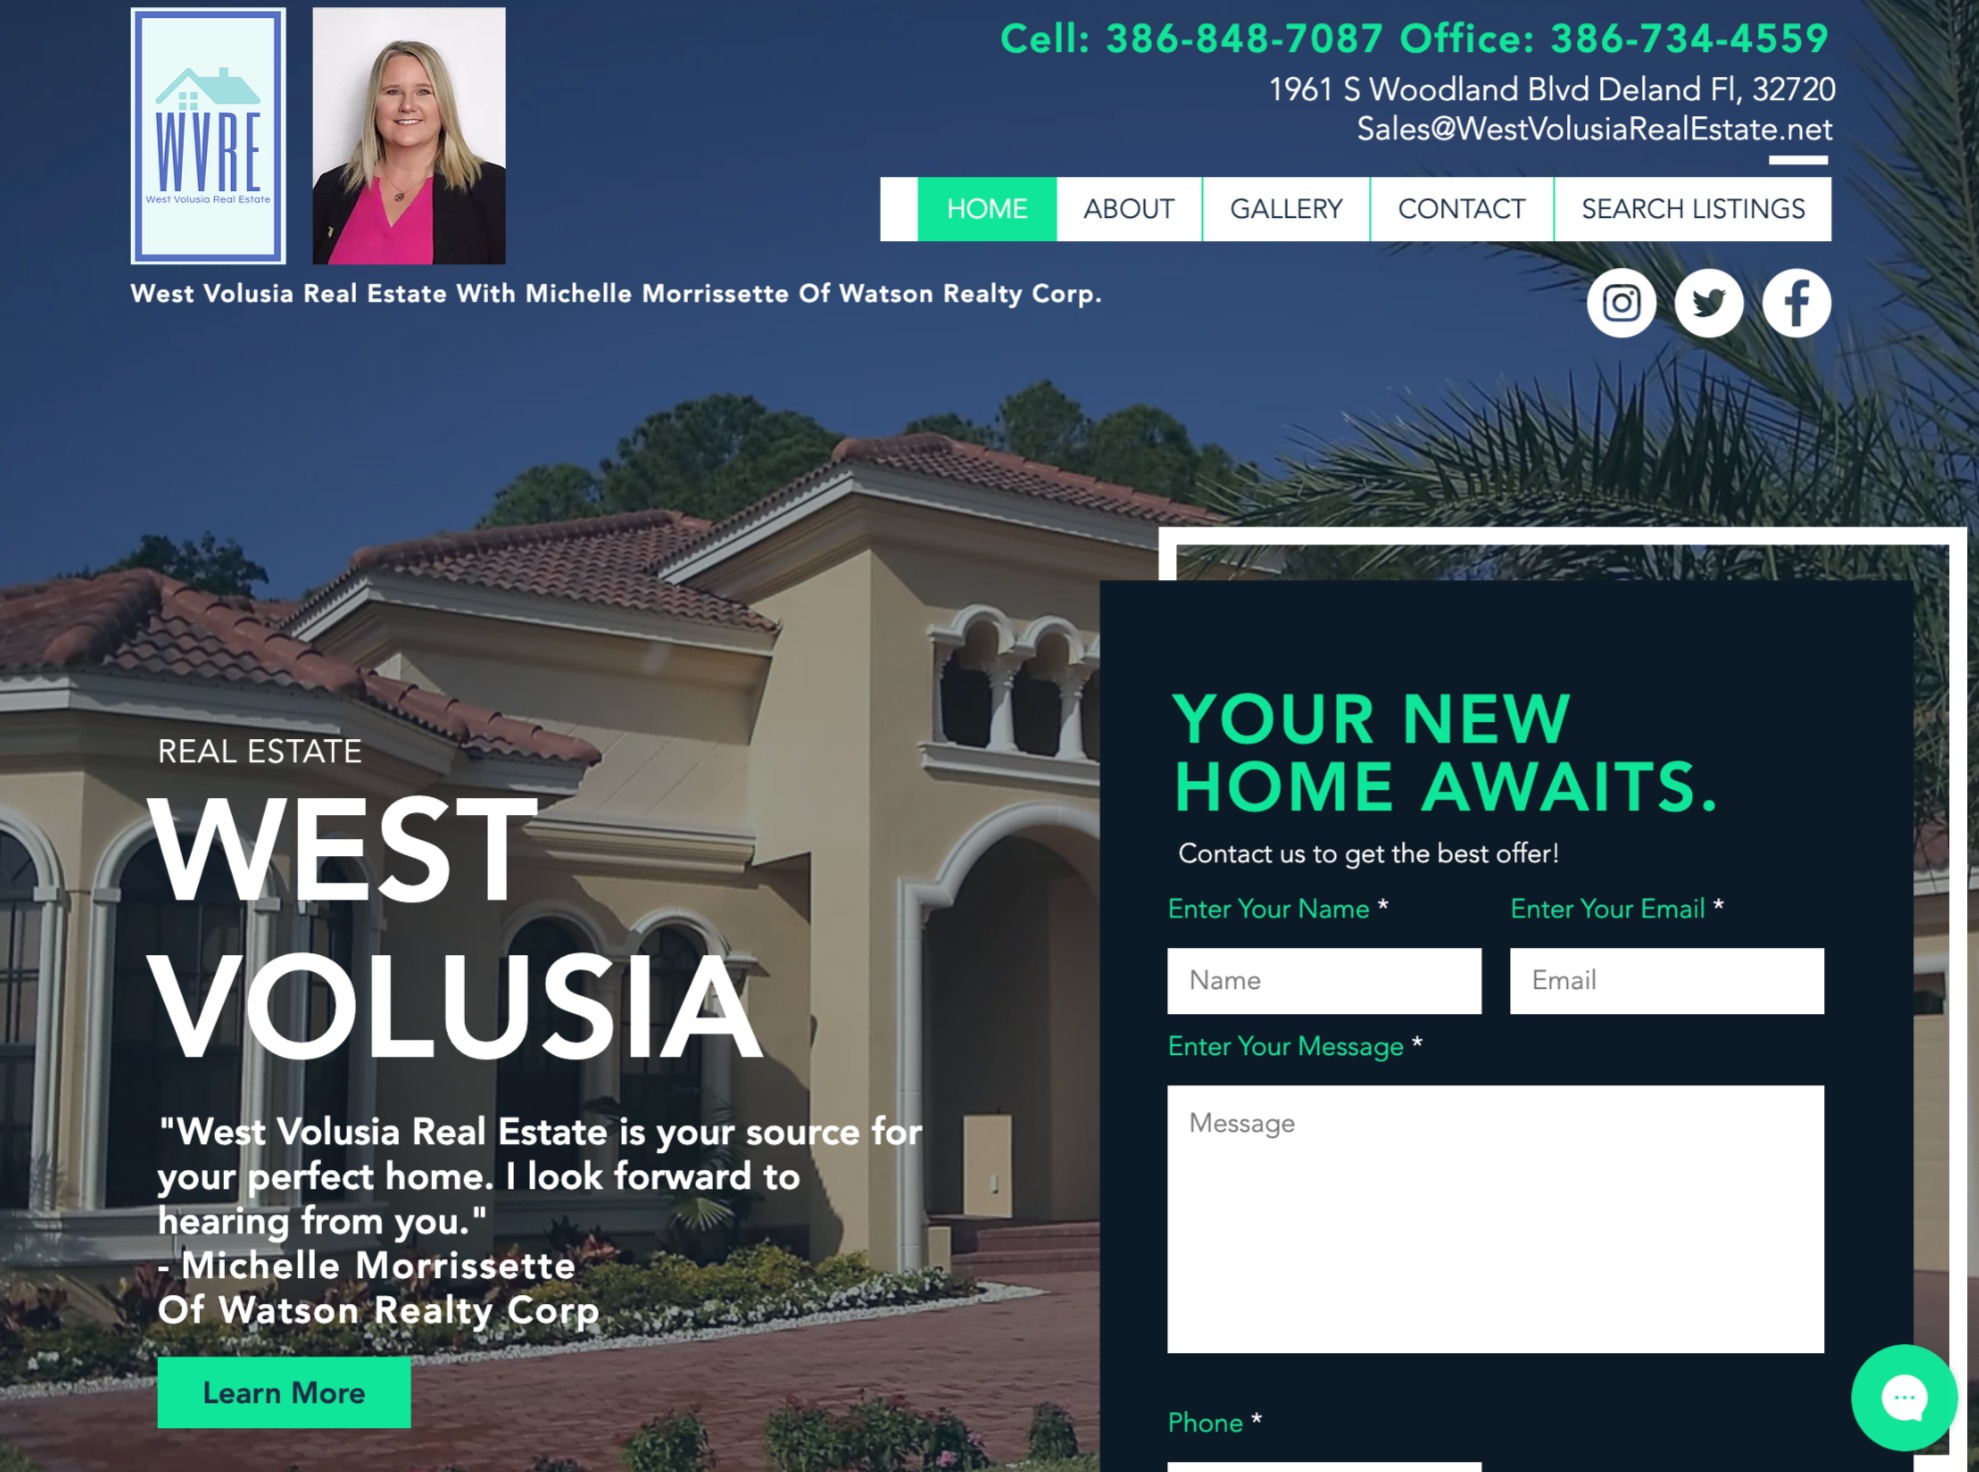 West Volusia Real Estate